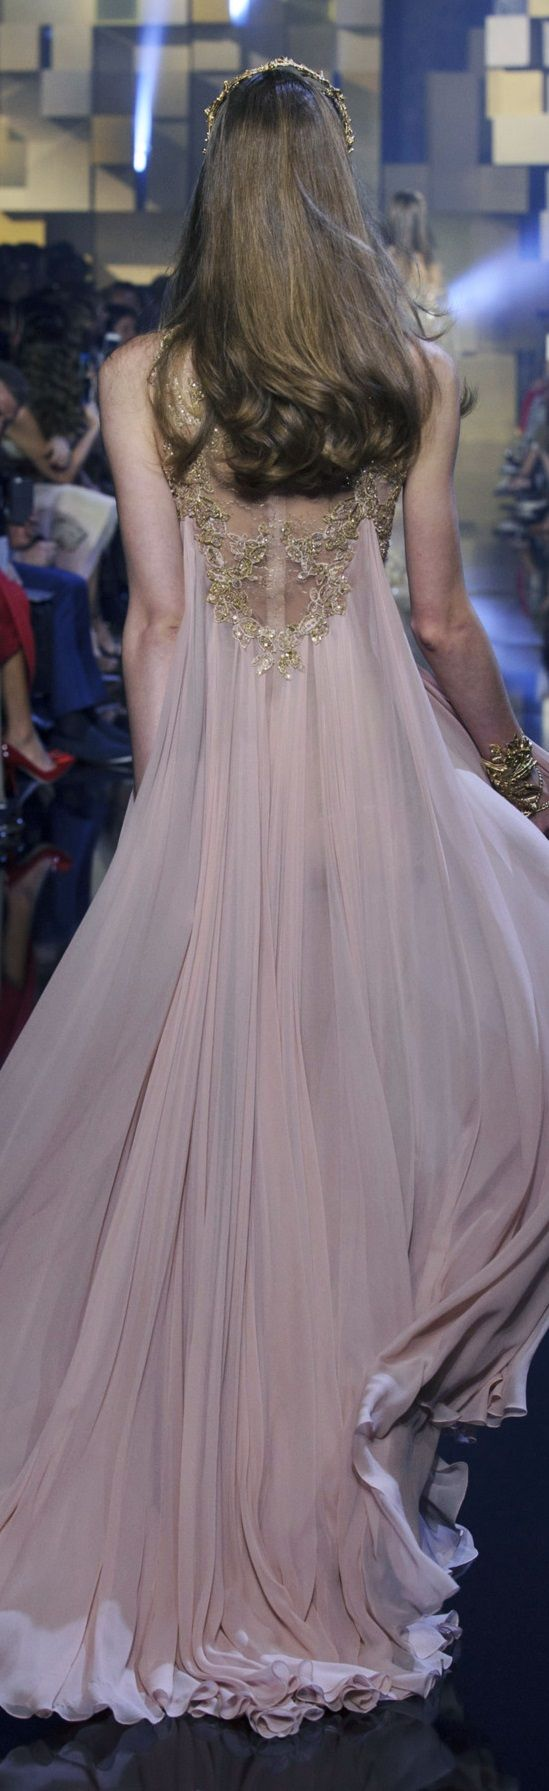 Elie Saab FW 2015 couture dress gown runway model fashion week